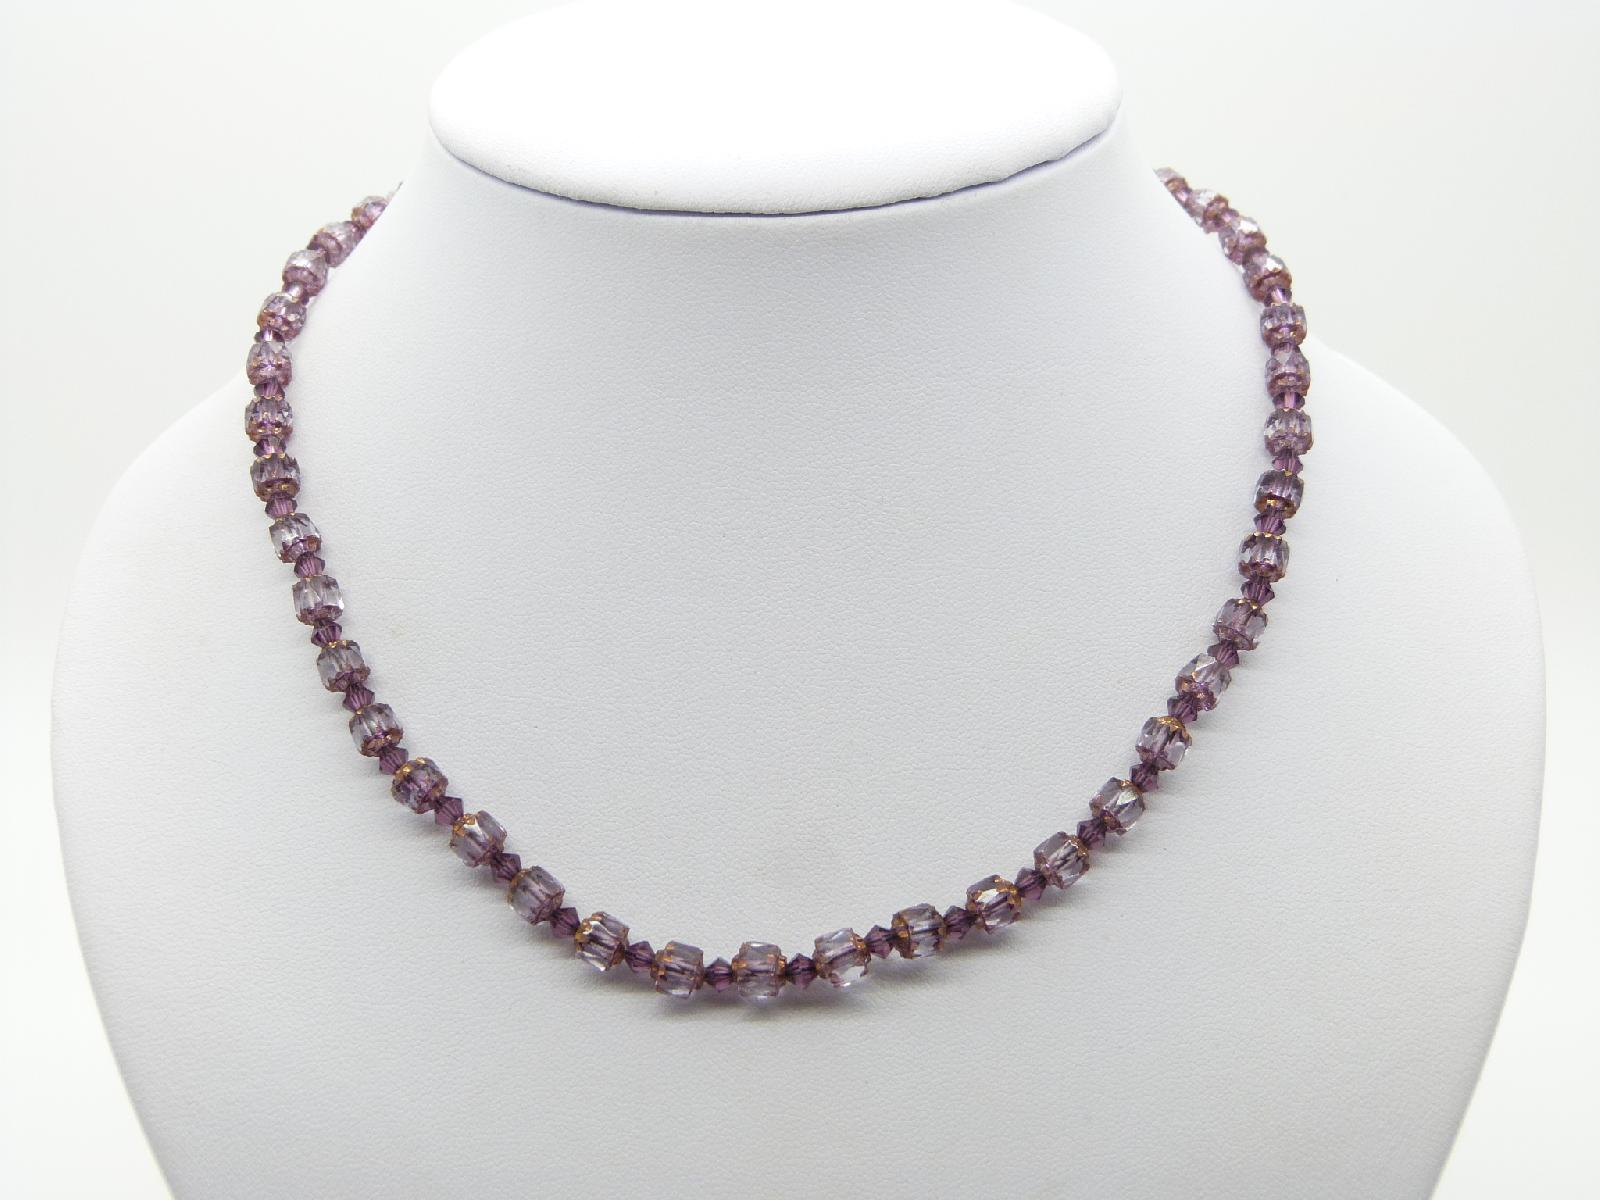 £12.00 - Vintage 30s Style Pretty Purple Glass Faceted Bead Necklace 43cms